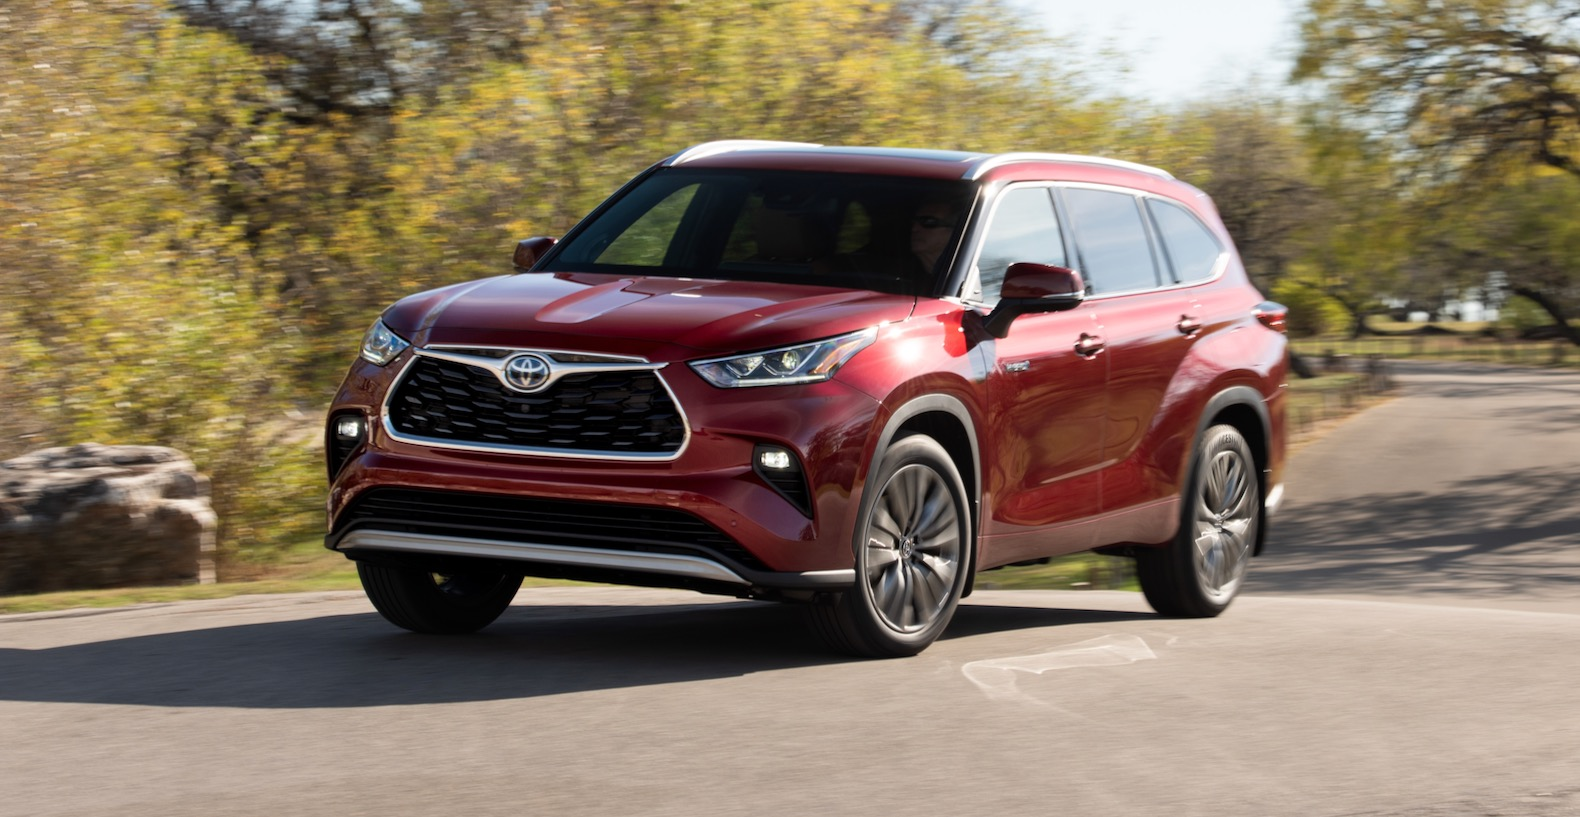 2020 toyota highlander hybrid review: not the biggest but